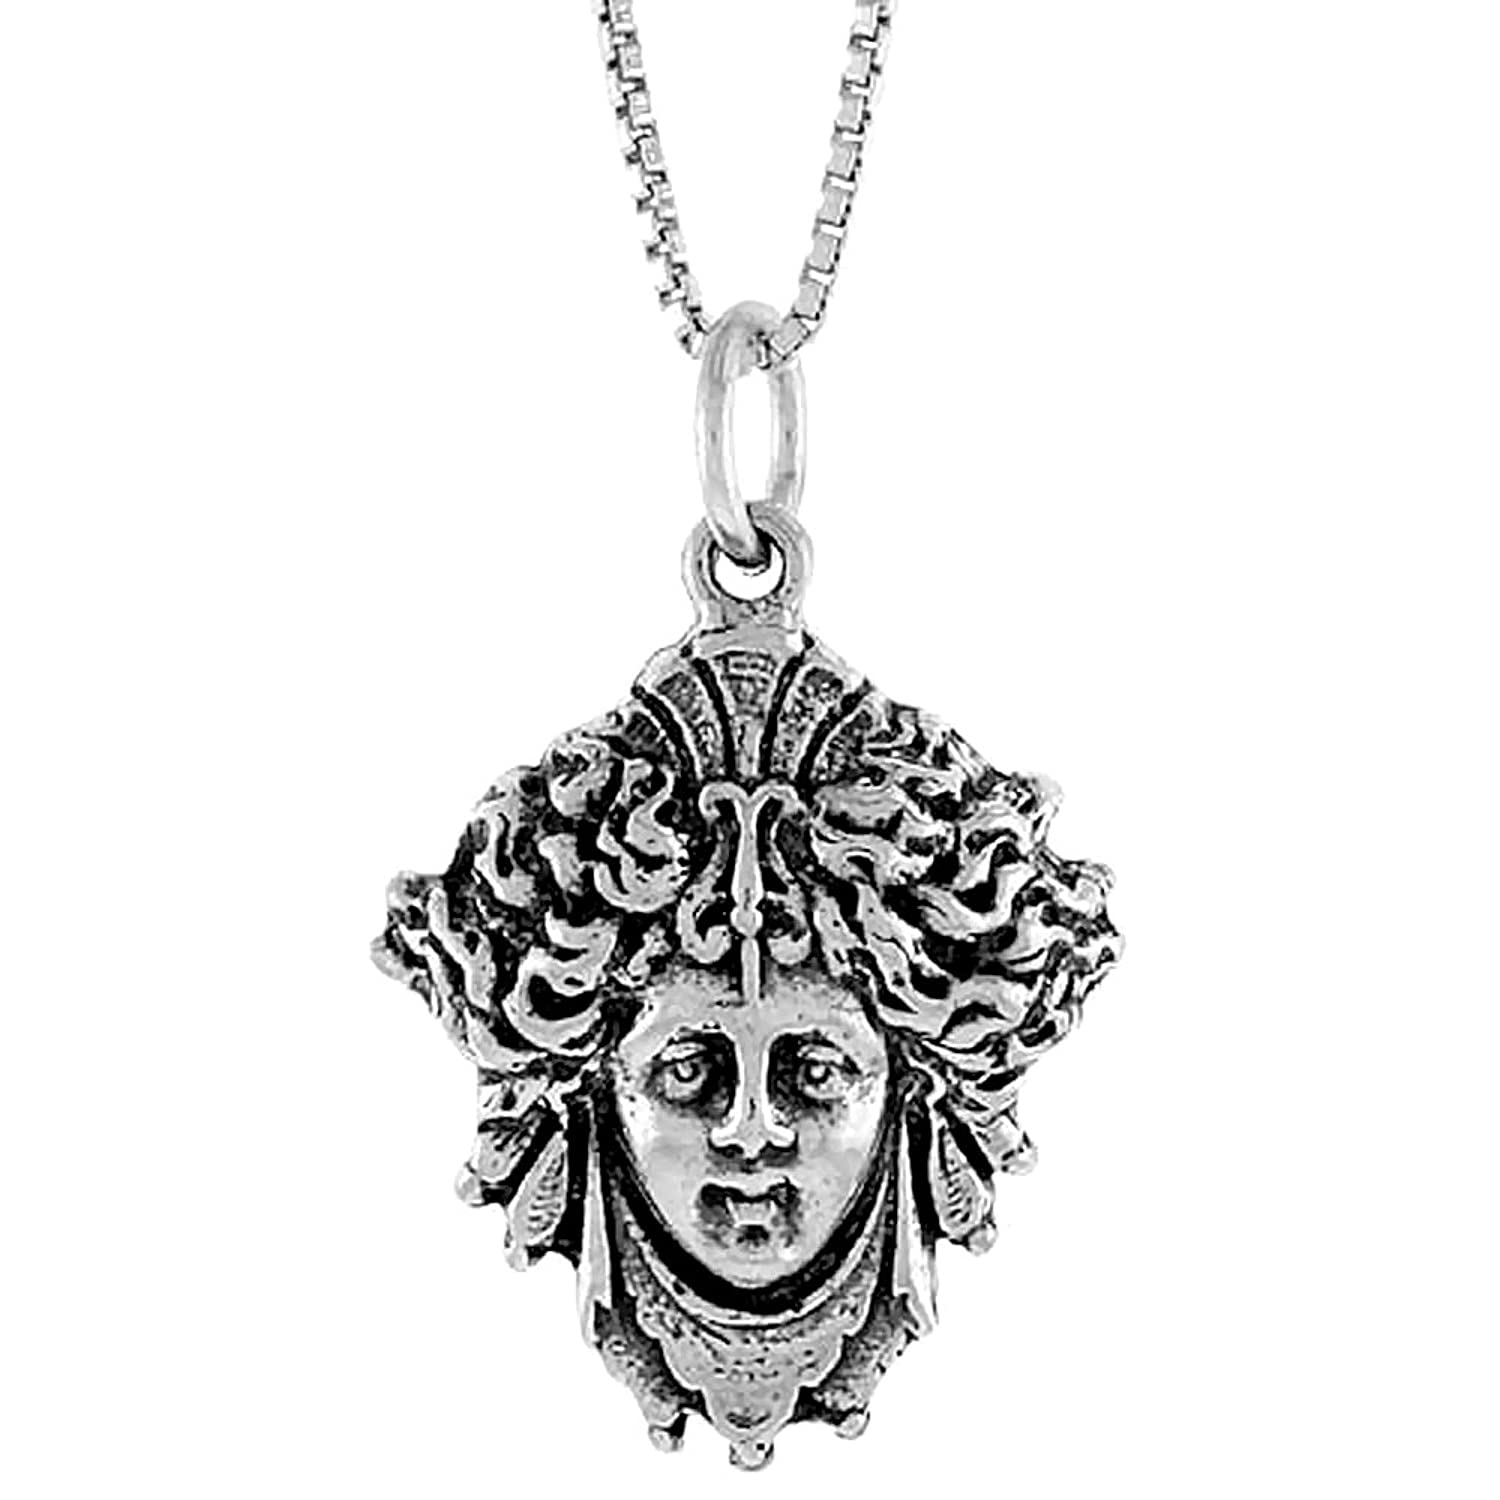 l men palais necklace us medusa collections pendant product le en versace inde spring summer